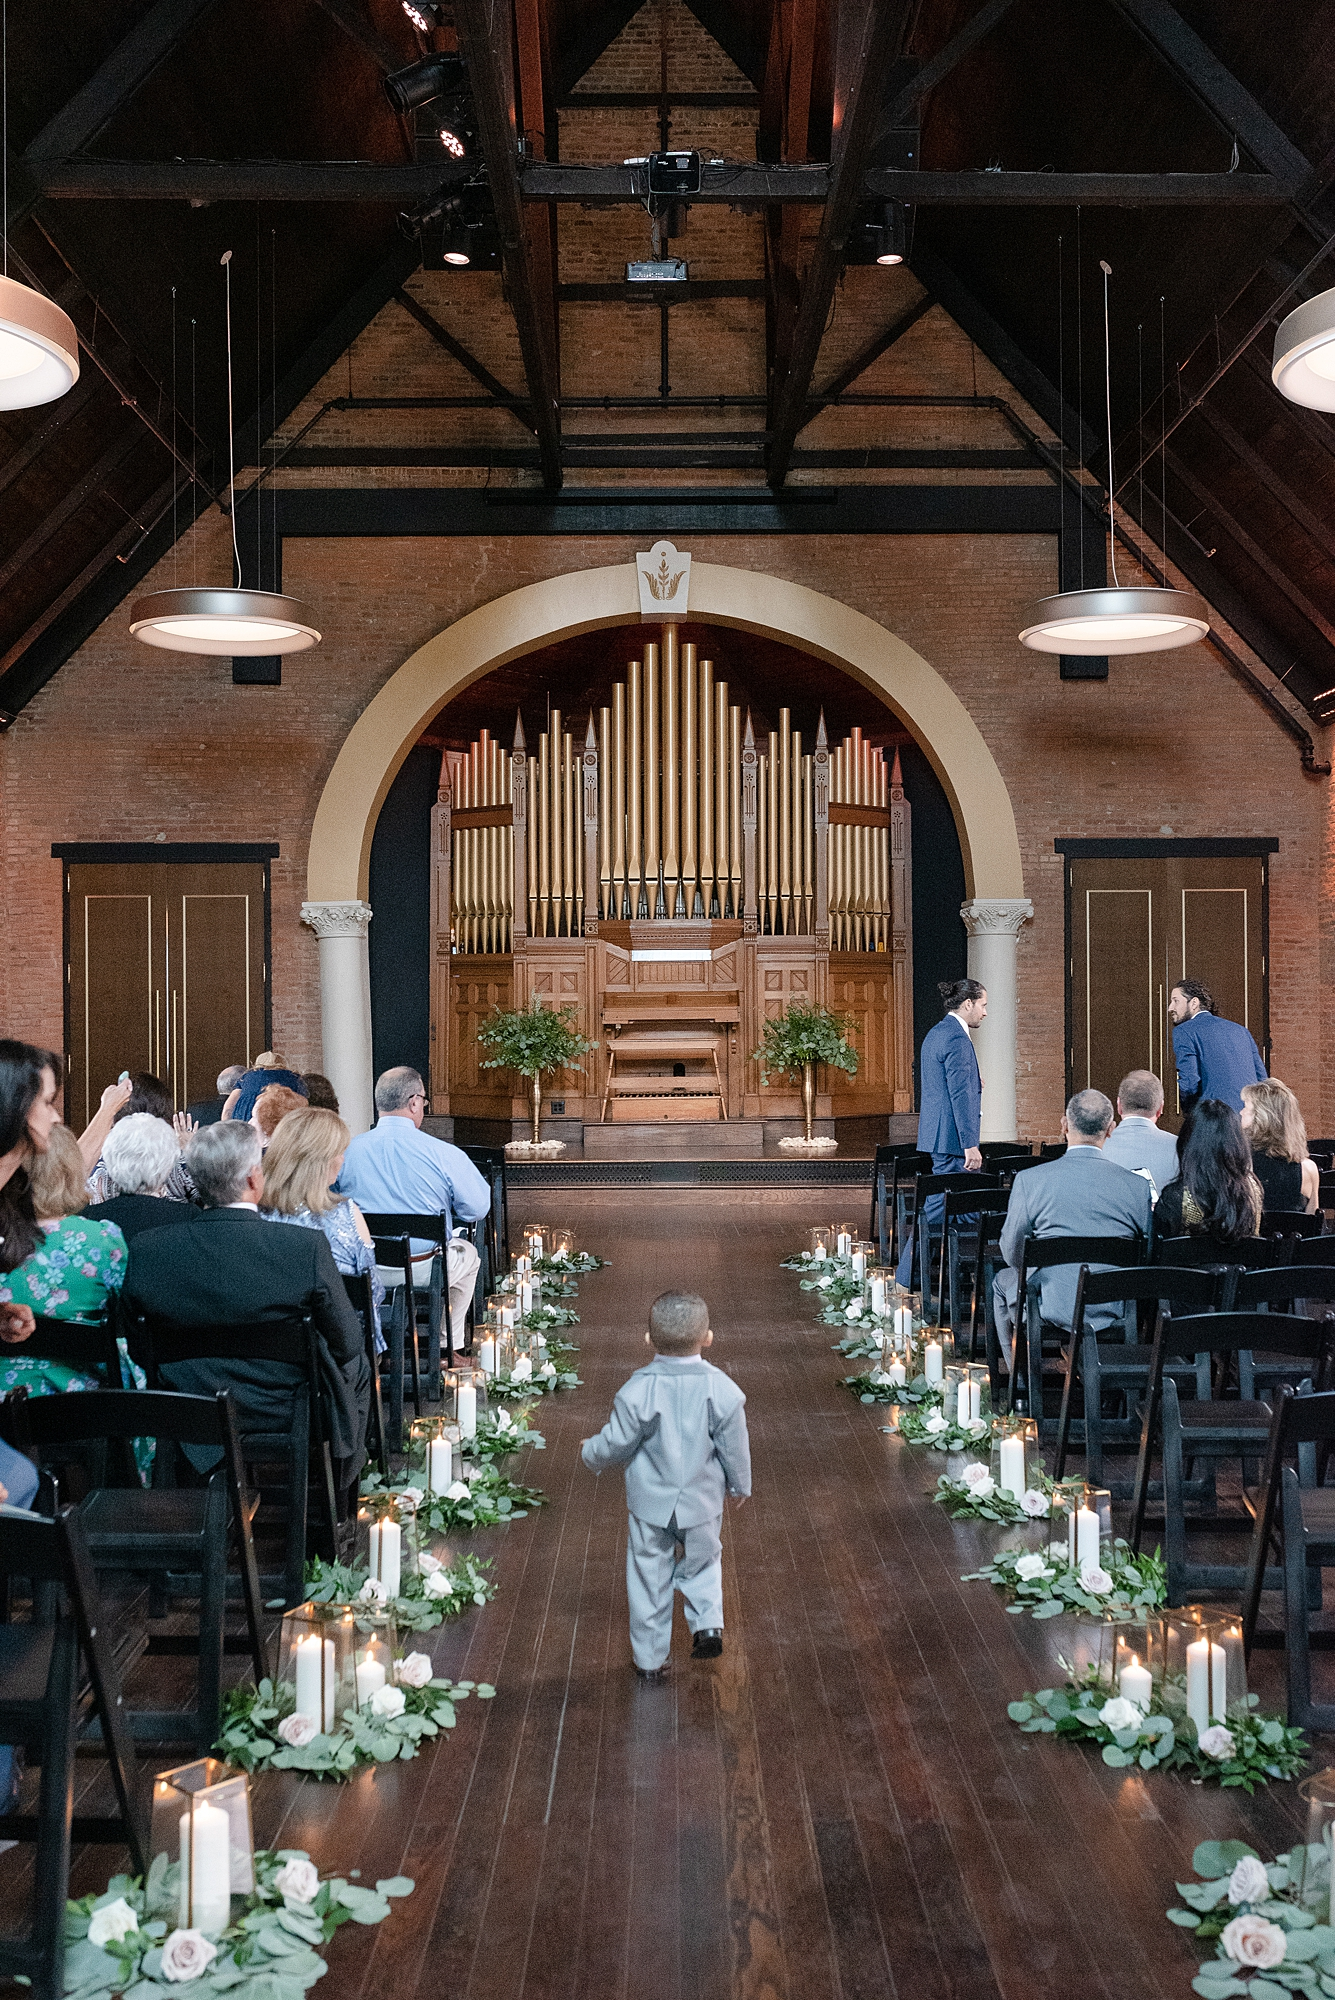 Wedding Ceremony: Modern and Southern Wedding at the Clementine featured on Nashville Bride Guide